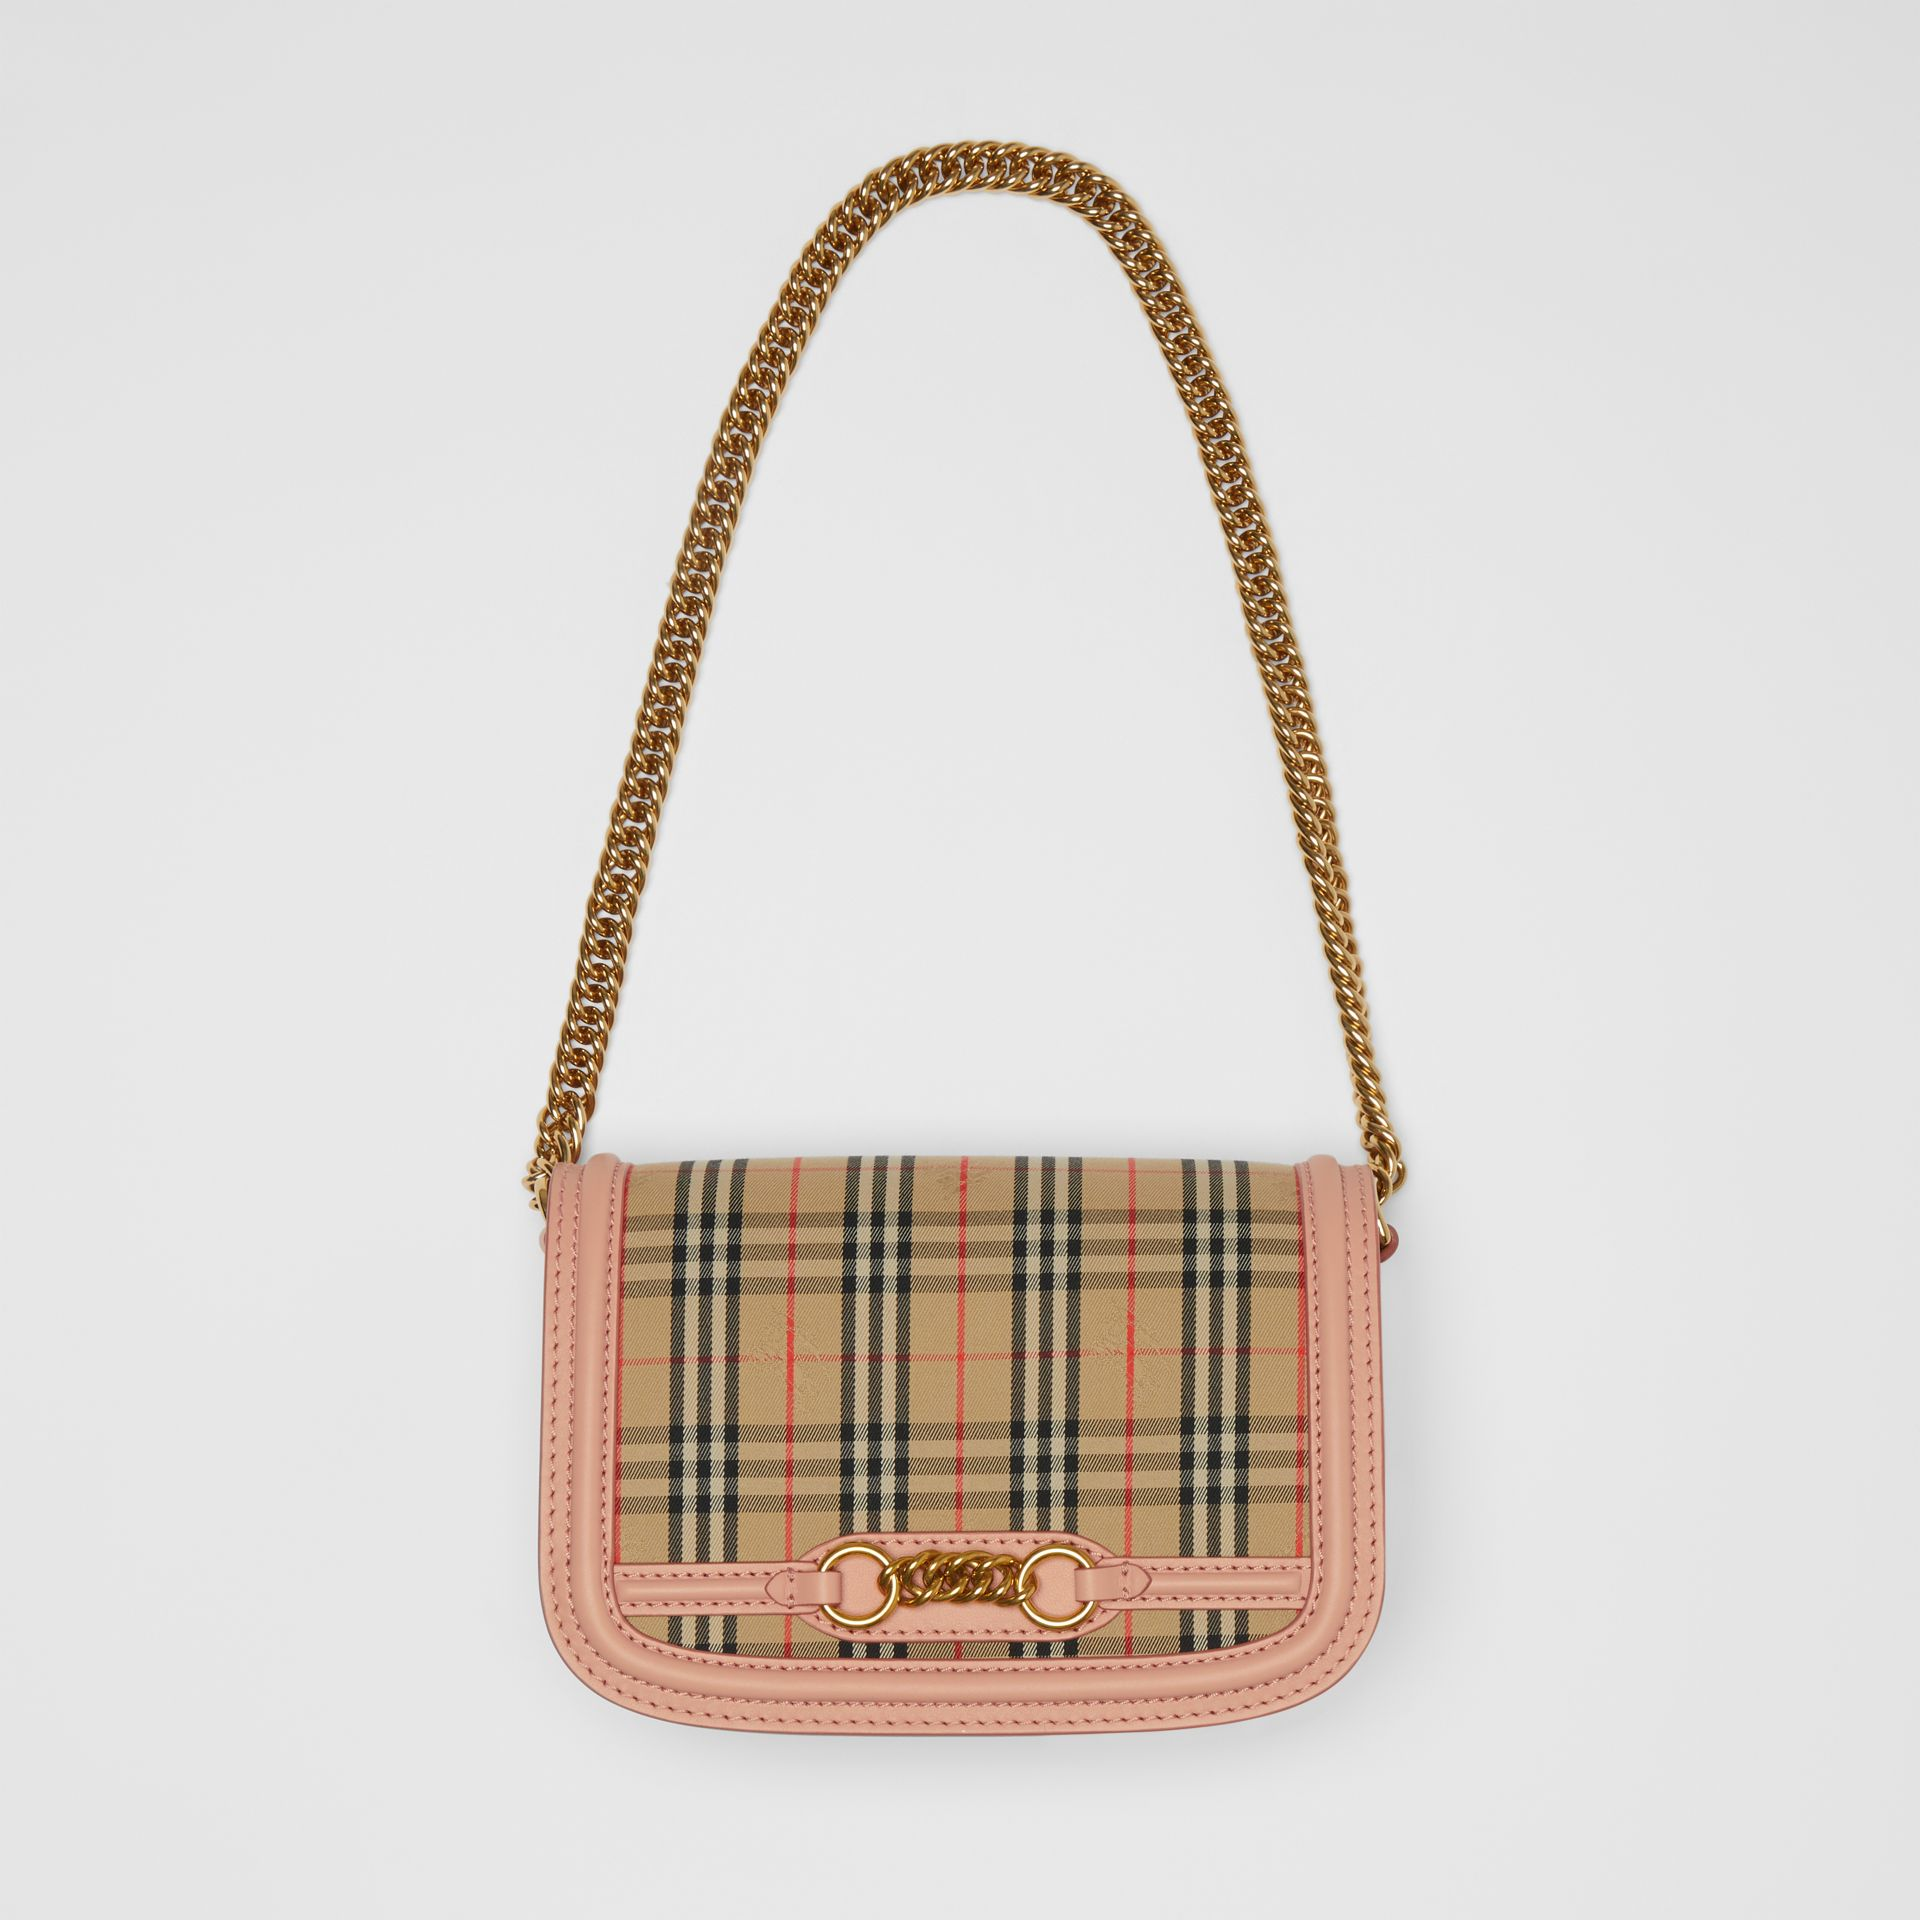 The 1983 Check Link Bag with Leather Trim in Peach - Women | Burberry - gallery image 4